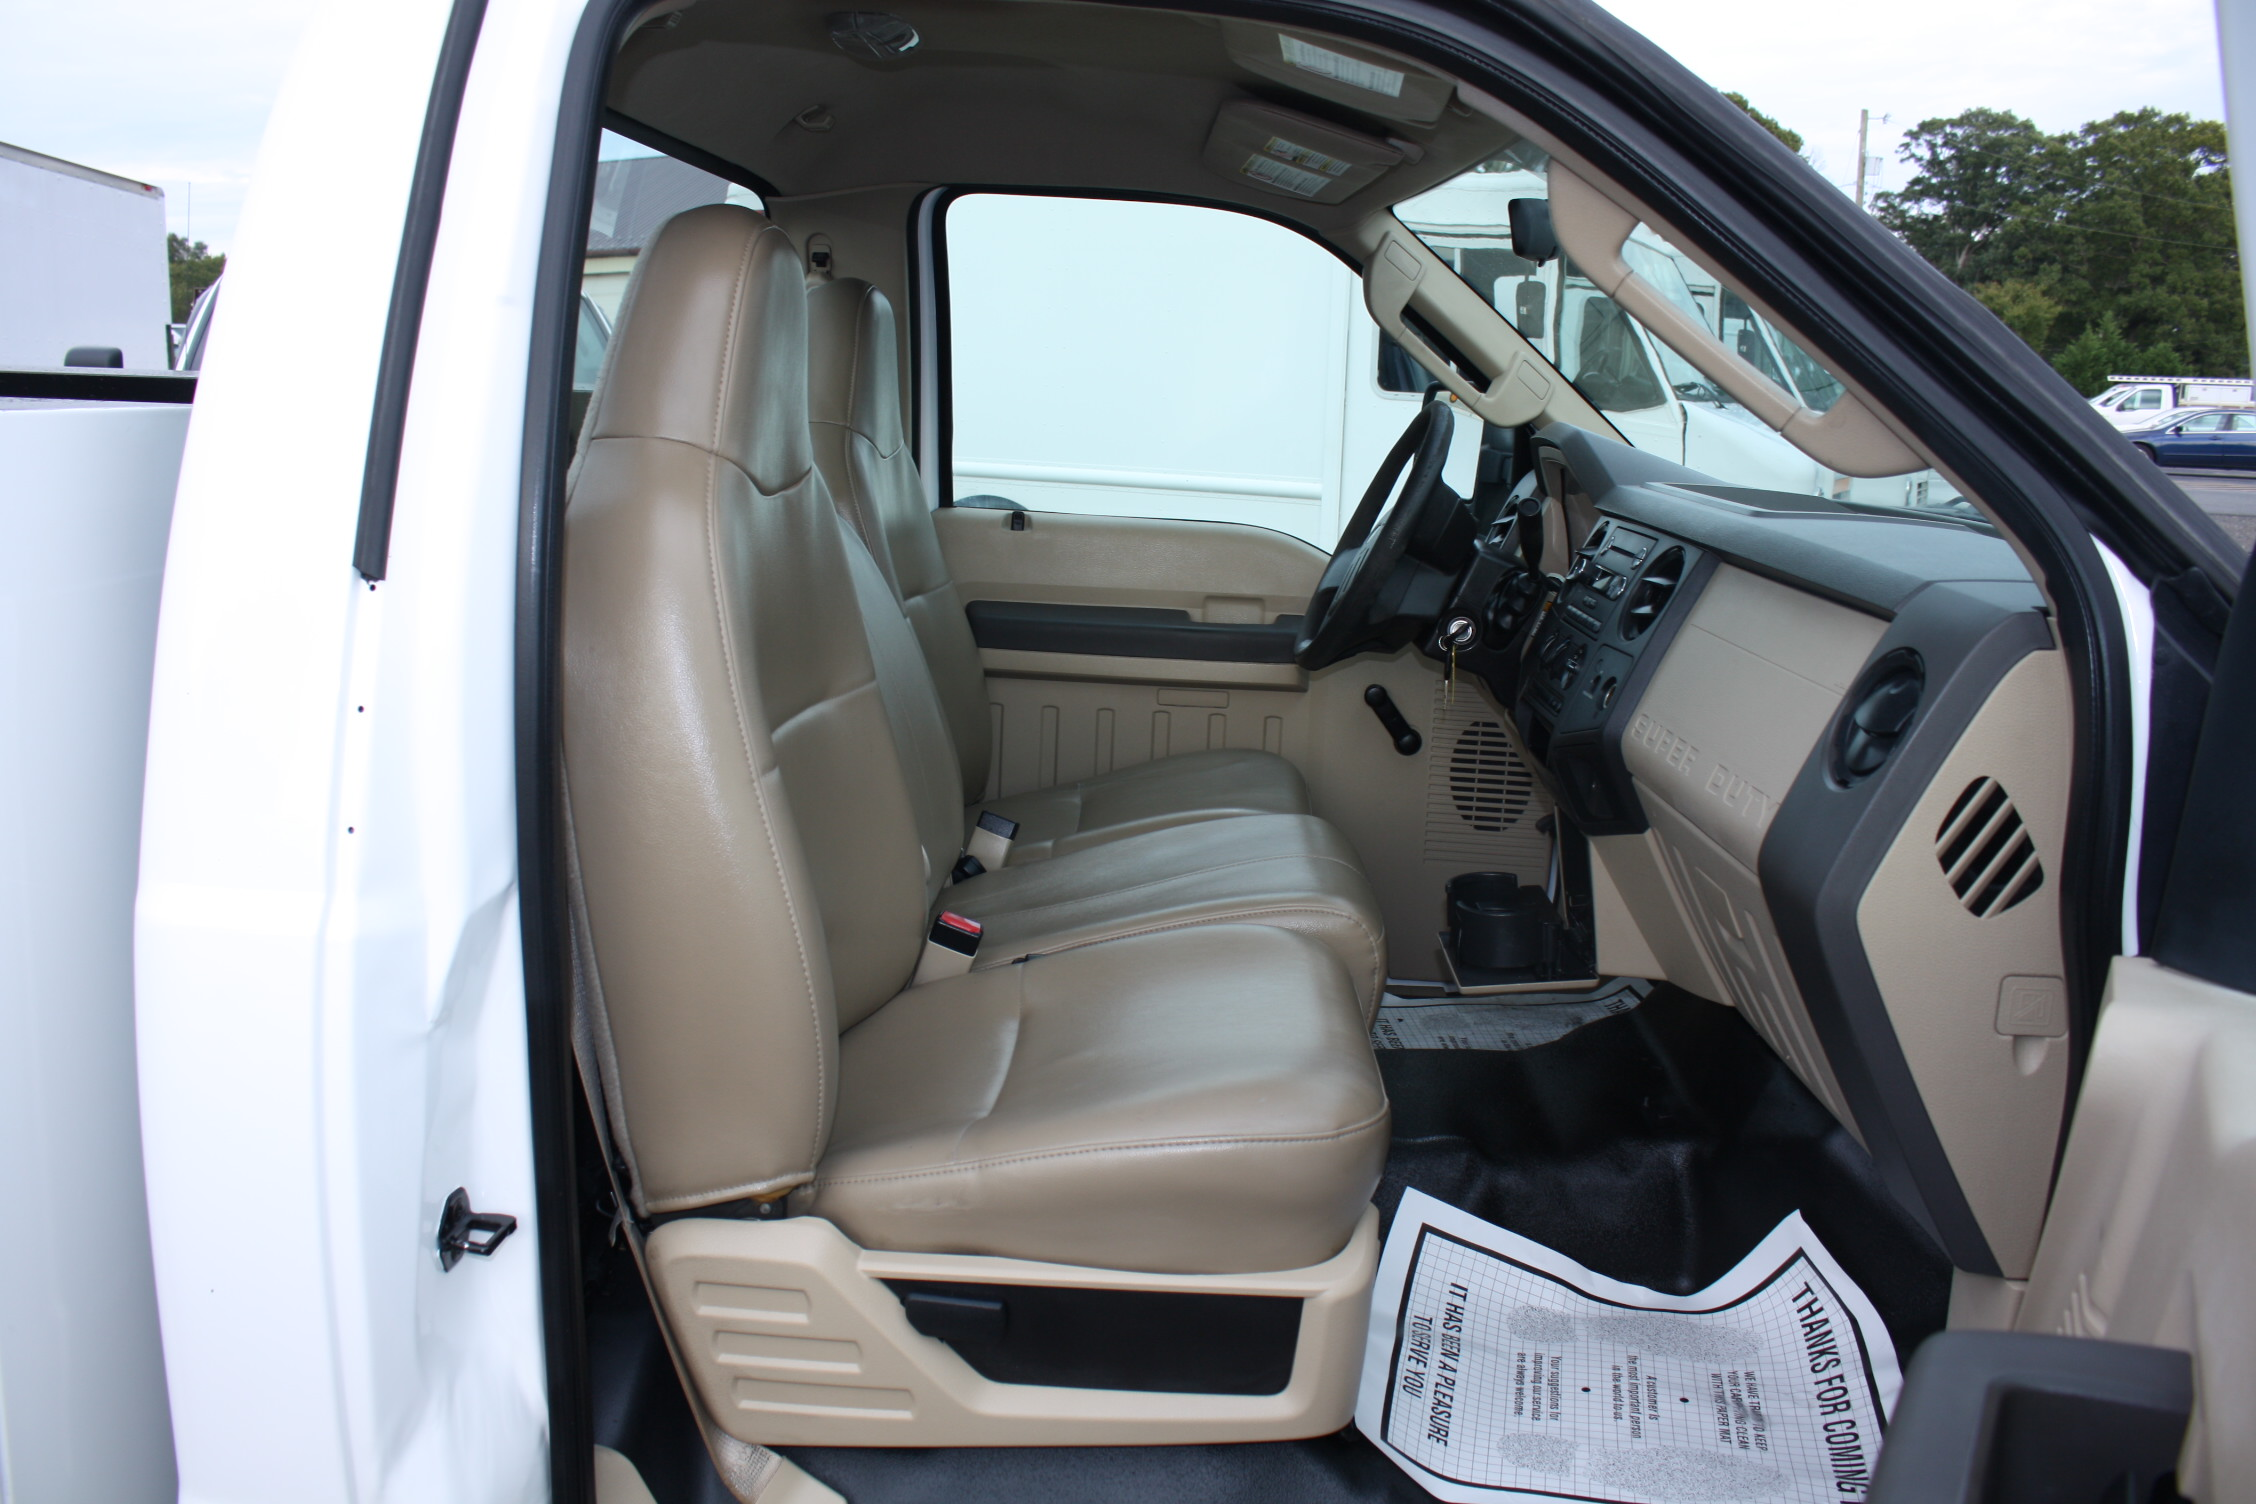 IMG 2172 - 2009 FORD F350 UTILITY TRUCK